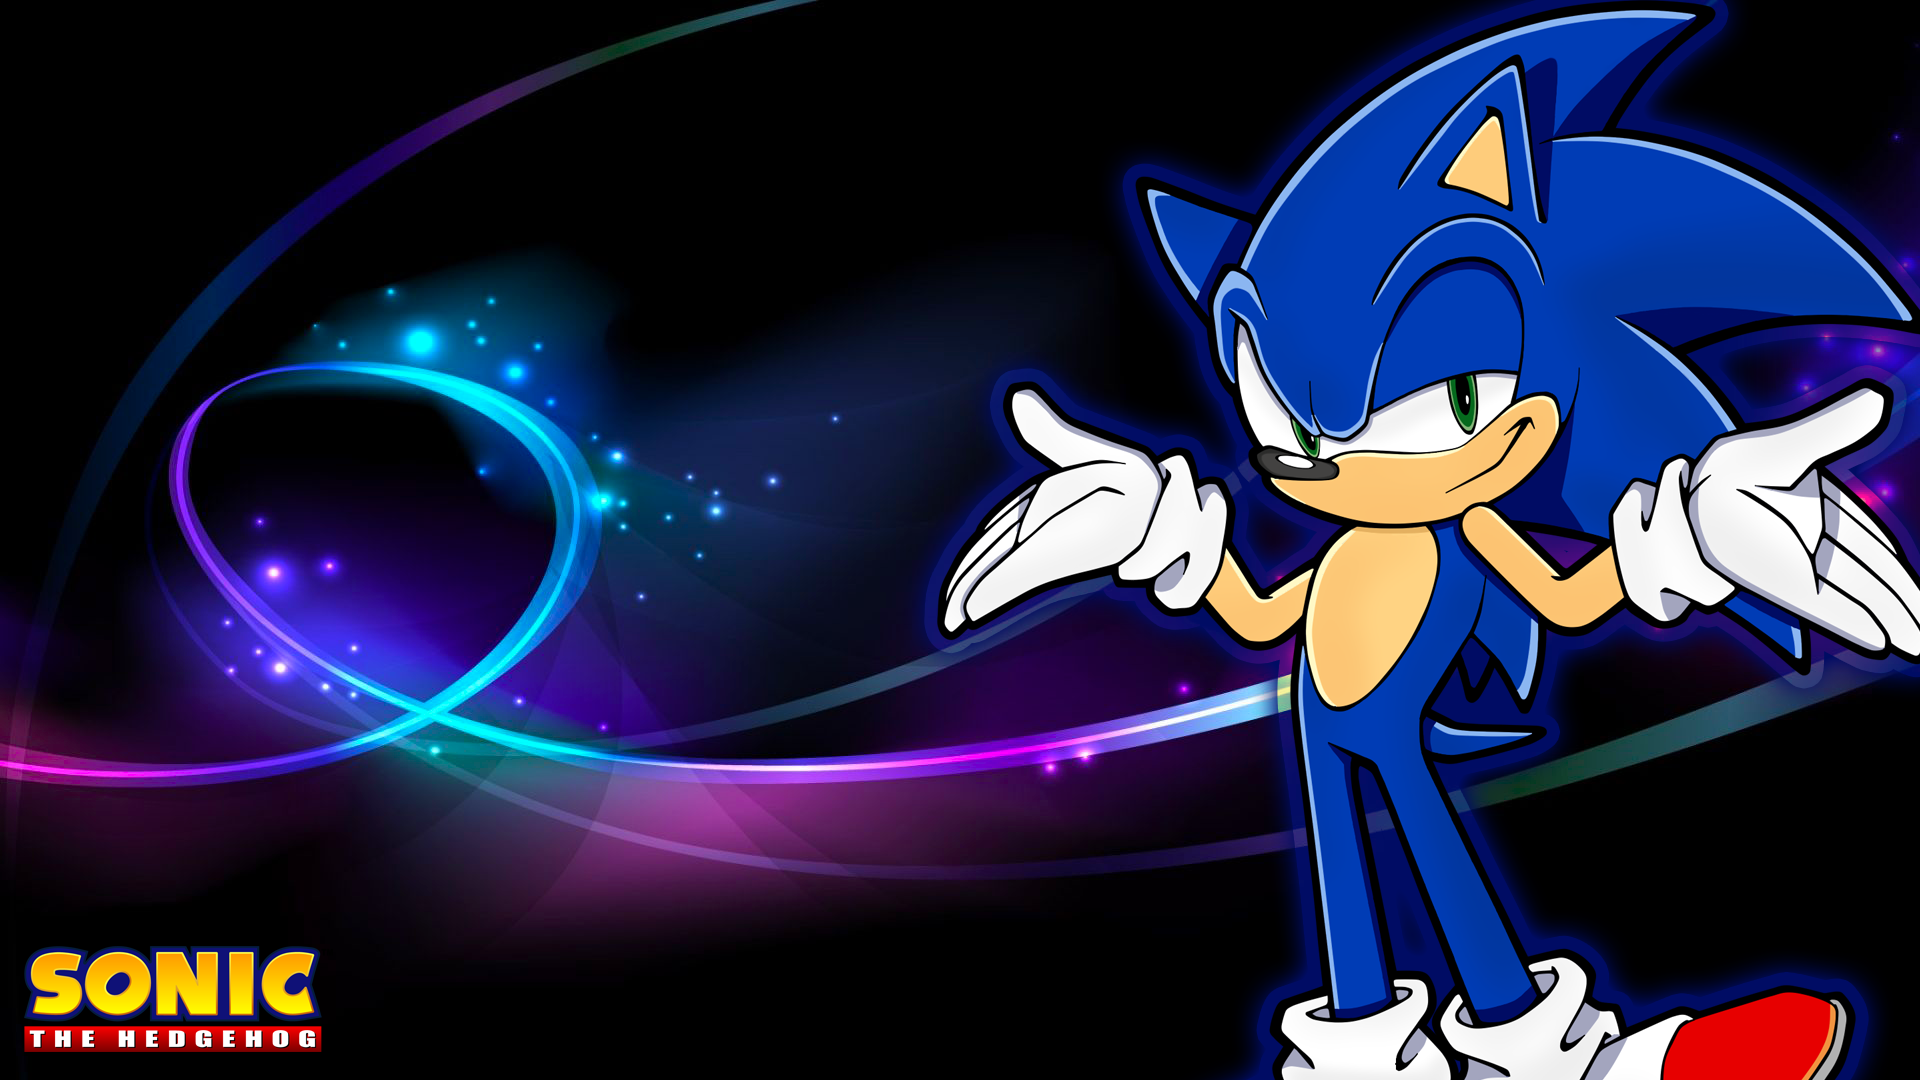 Sonic Photos (1920x1080, TMM5353)